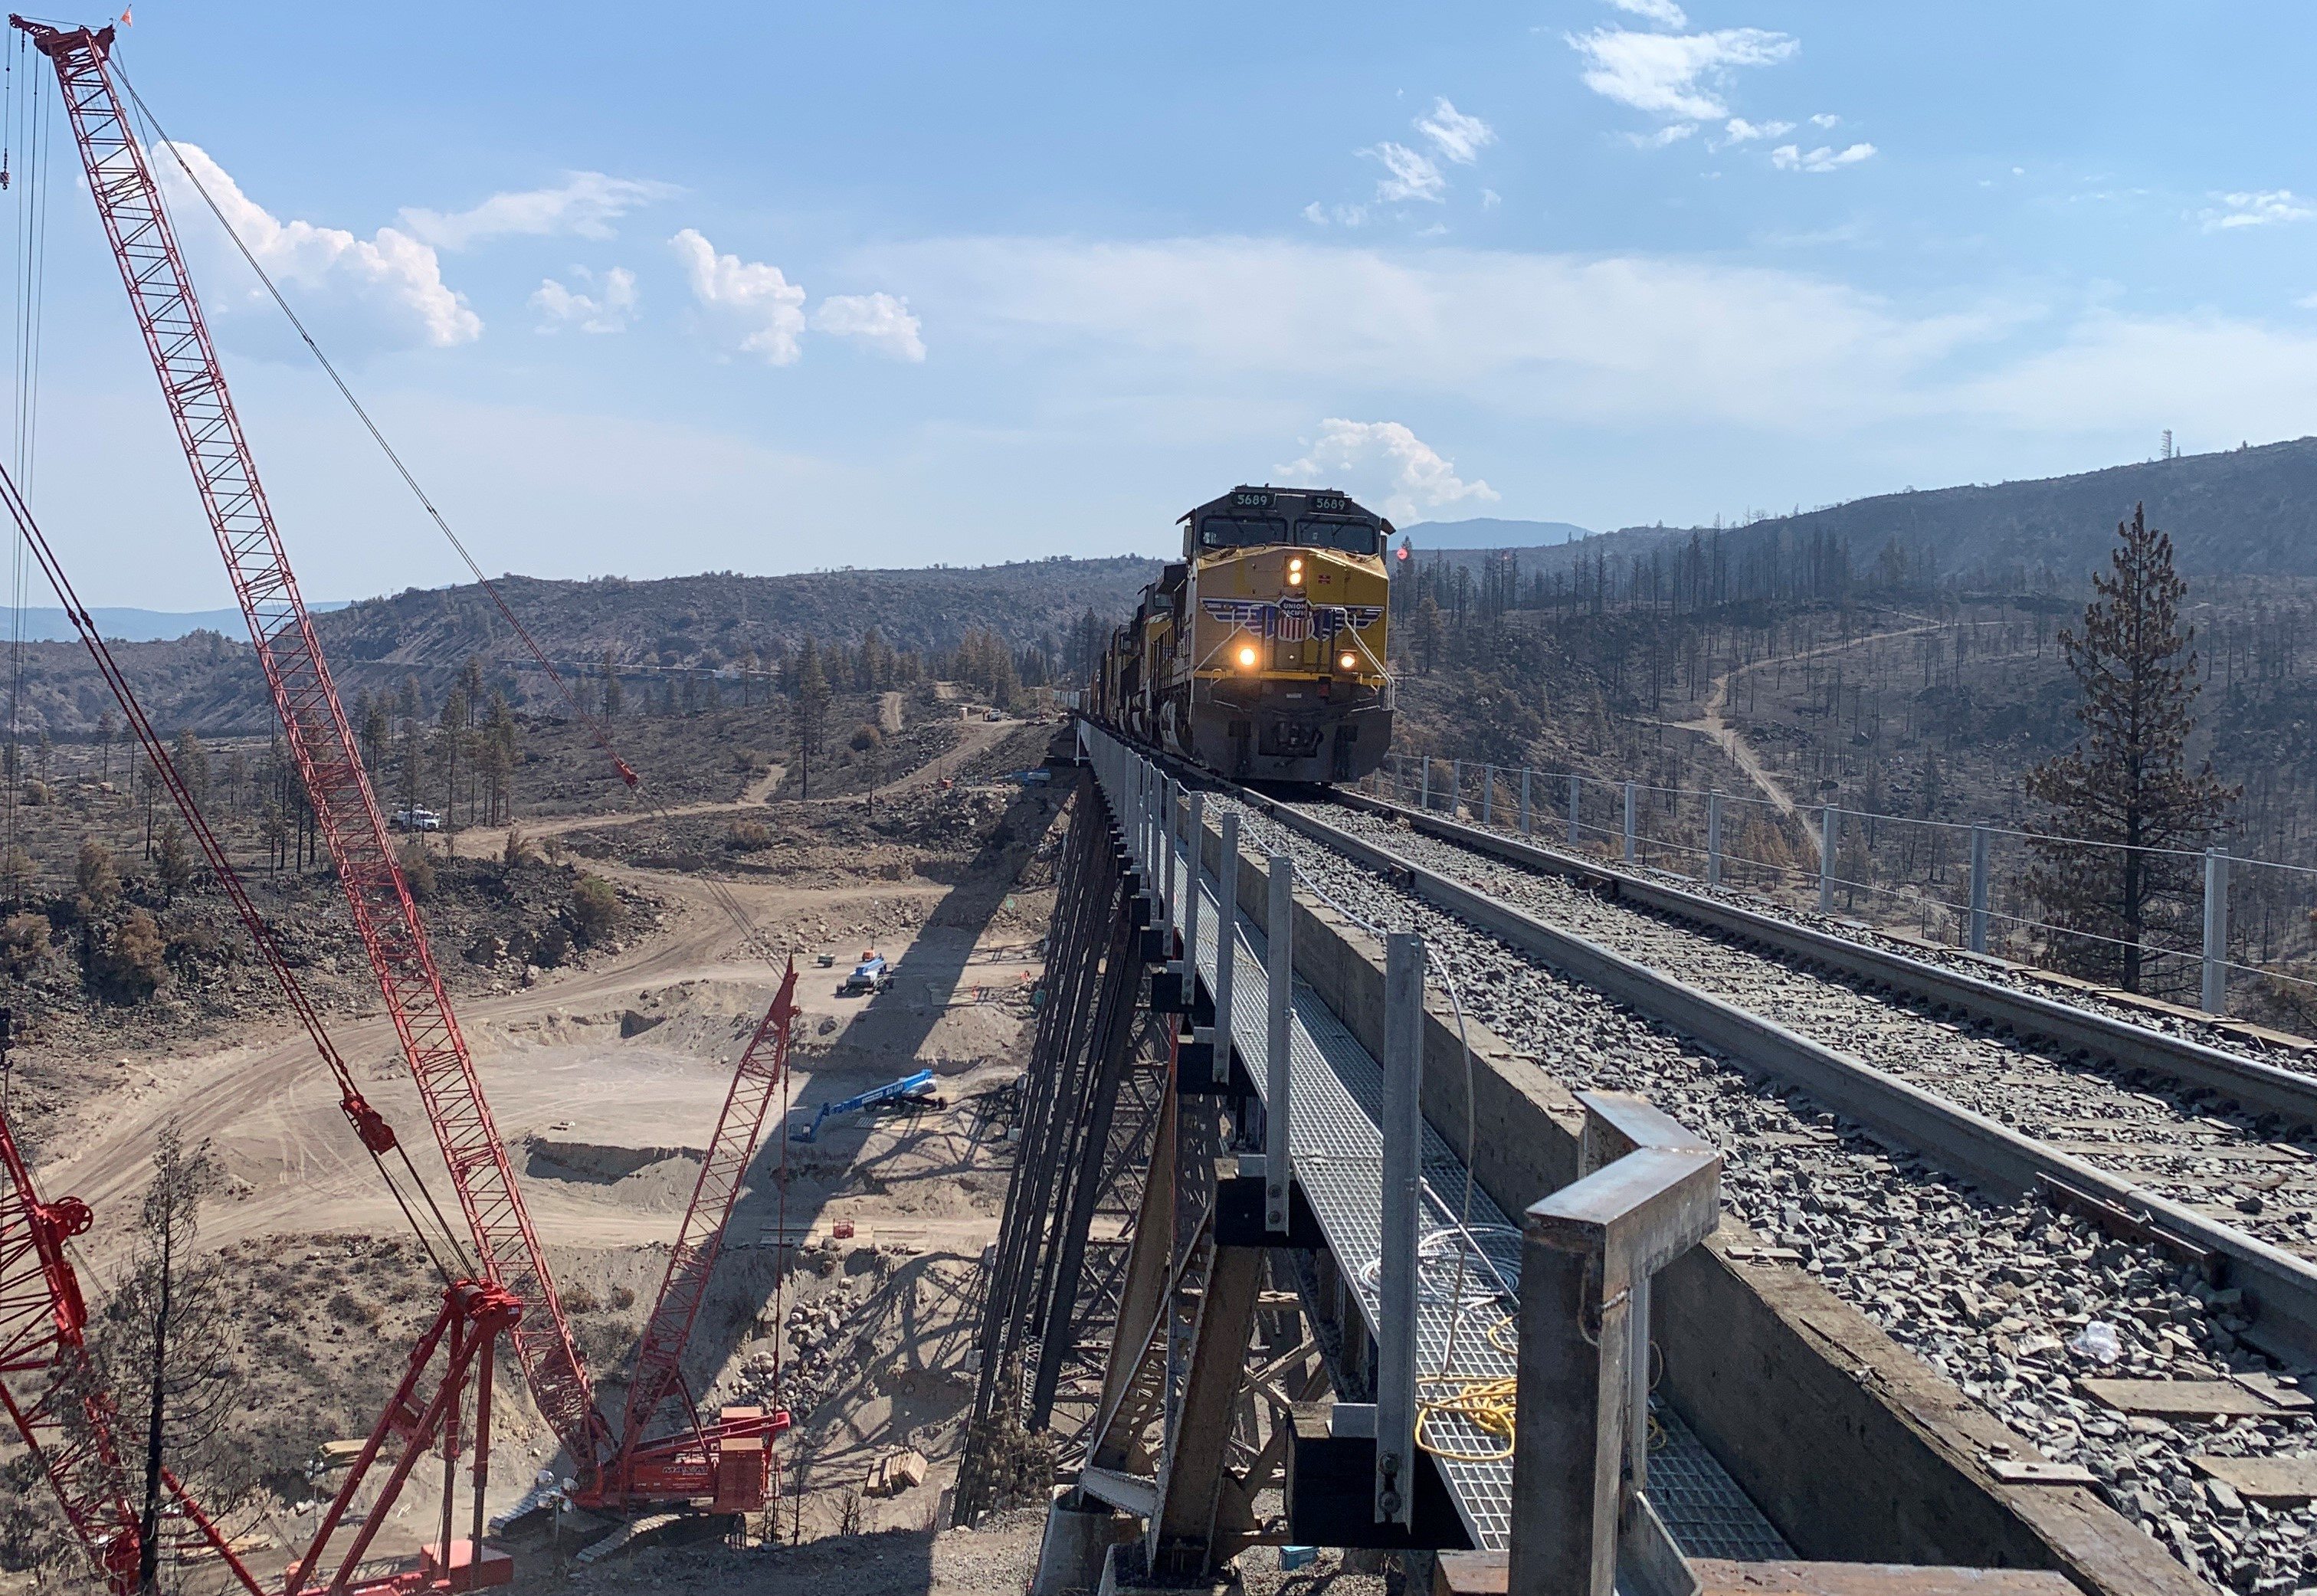 A photograph of a Union Pacific train crossing the Dry Canyon Bridge.